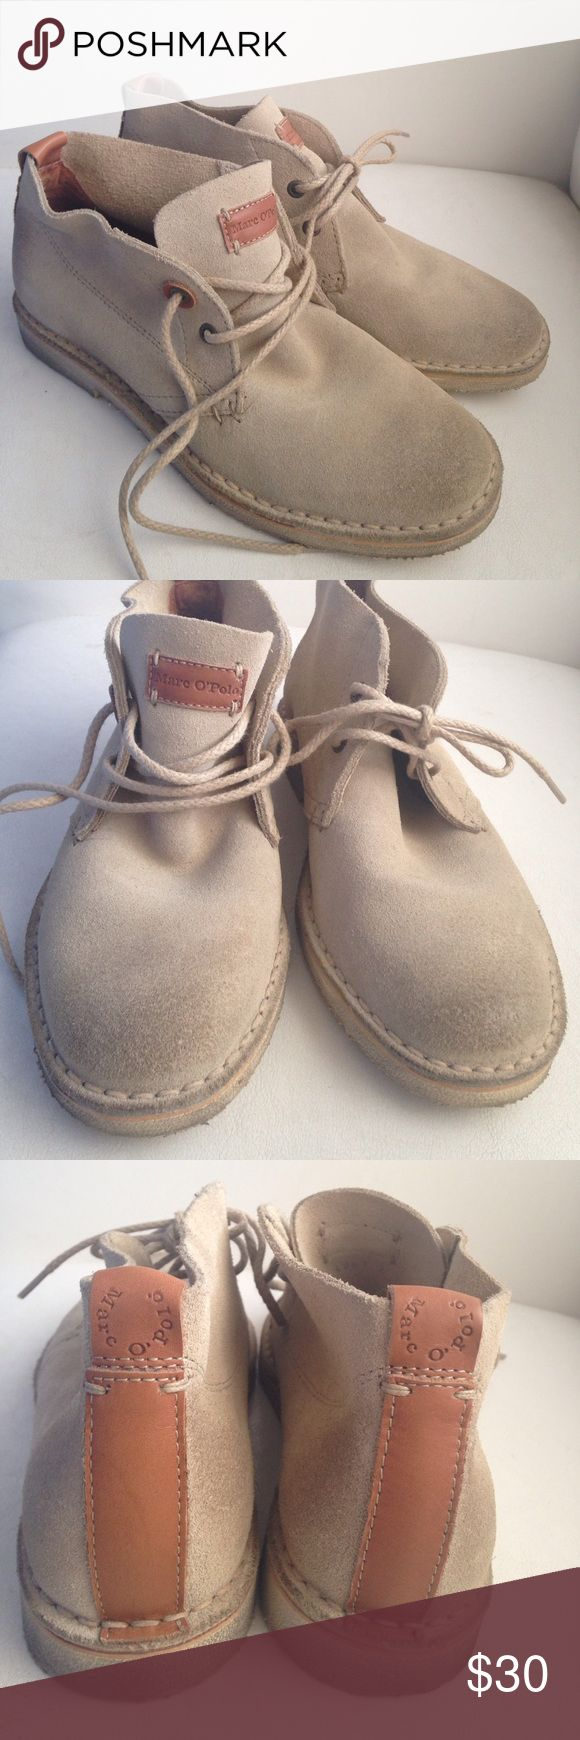 Suede Desert Boot These super cute desert boots are made of soft suede with light brown leather accents, looks great with anything denim. An updated version of a Clark shoe these are made in Italy by a european brand named Marc O'Polo. Casually elegant these look great with cargo shorts as well as floral dresses!! These are a size 6 and true to size, rubber sole ensures long wear! I wore these once only before realizing that they are too small! Shoes Lace Up Boots